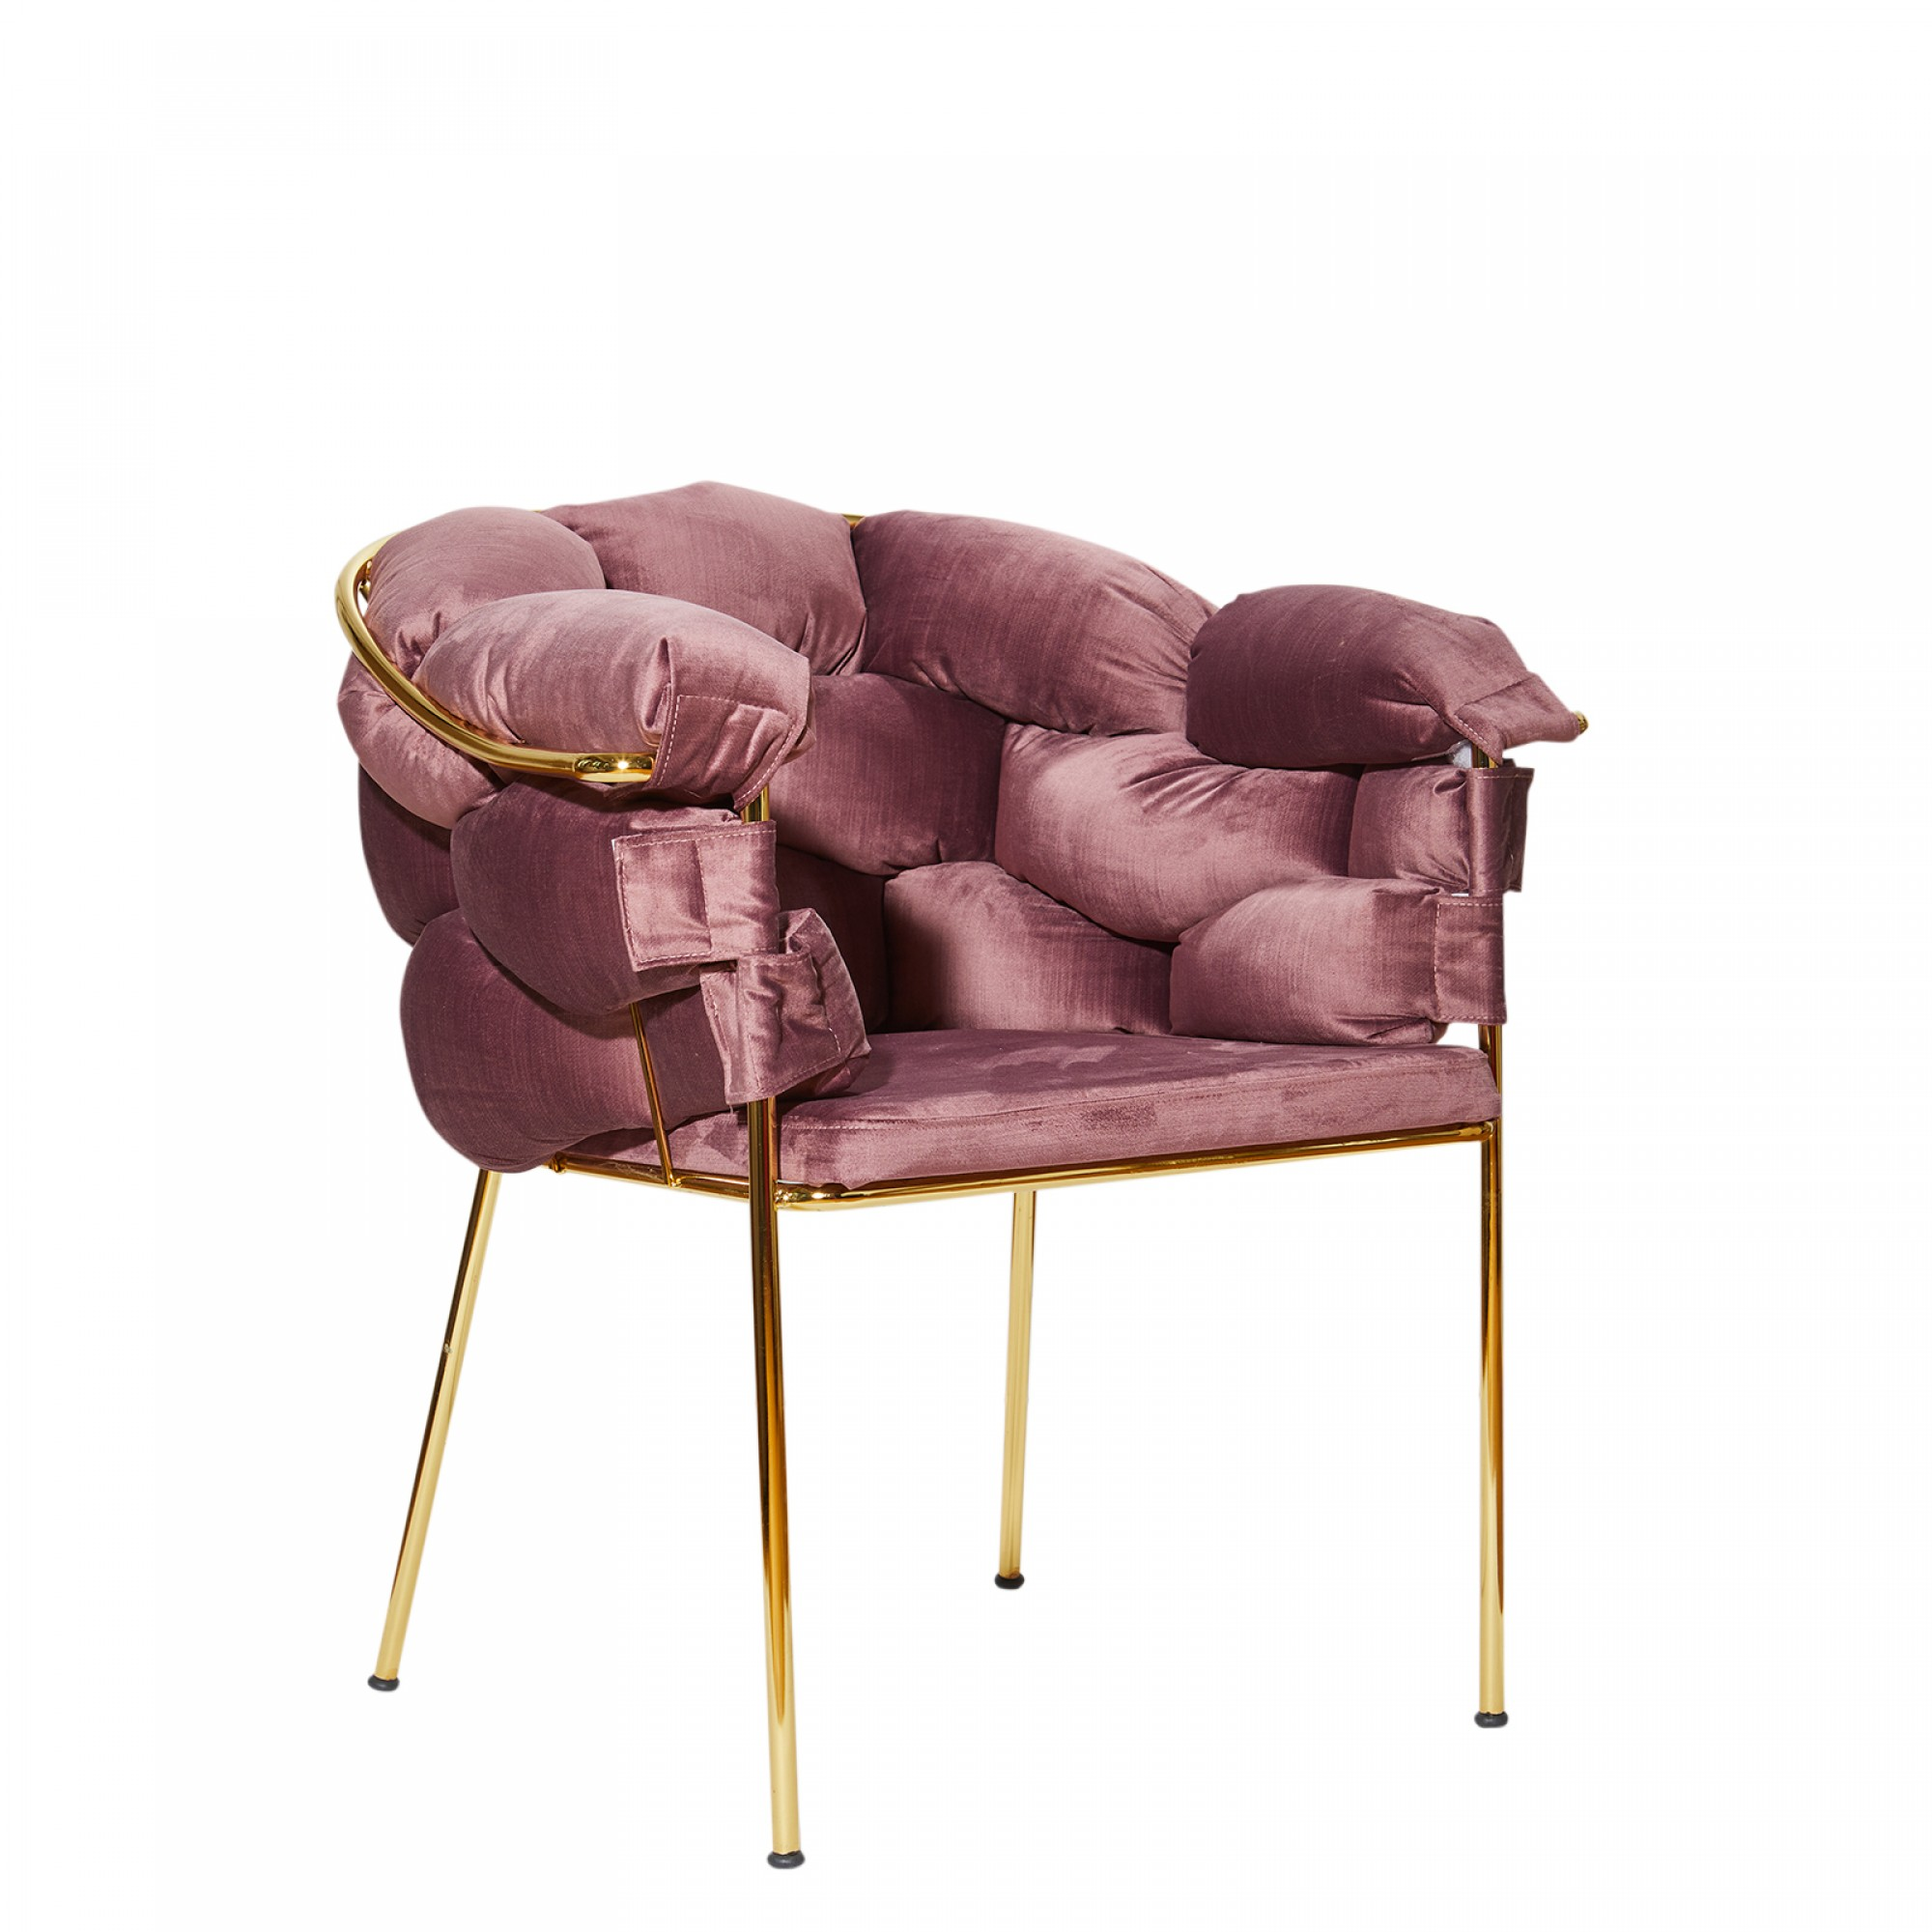 Chair with golden metal structure, fully upholstered with pink lavender velvet – BALONLU